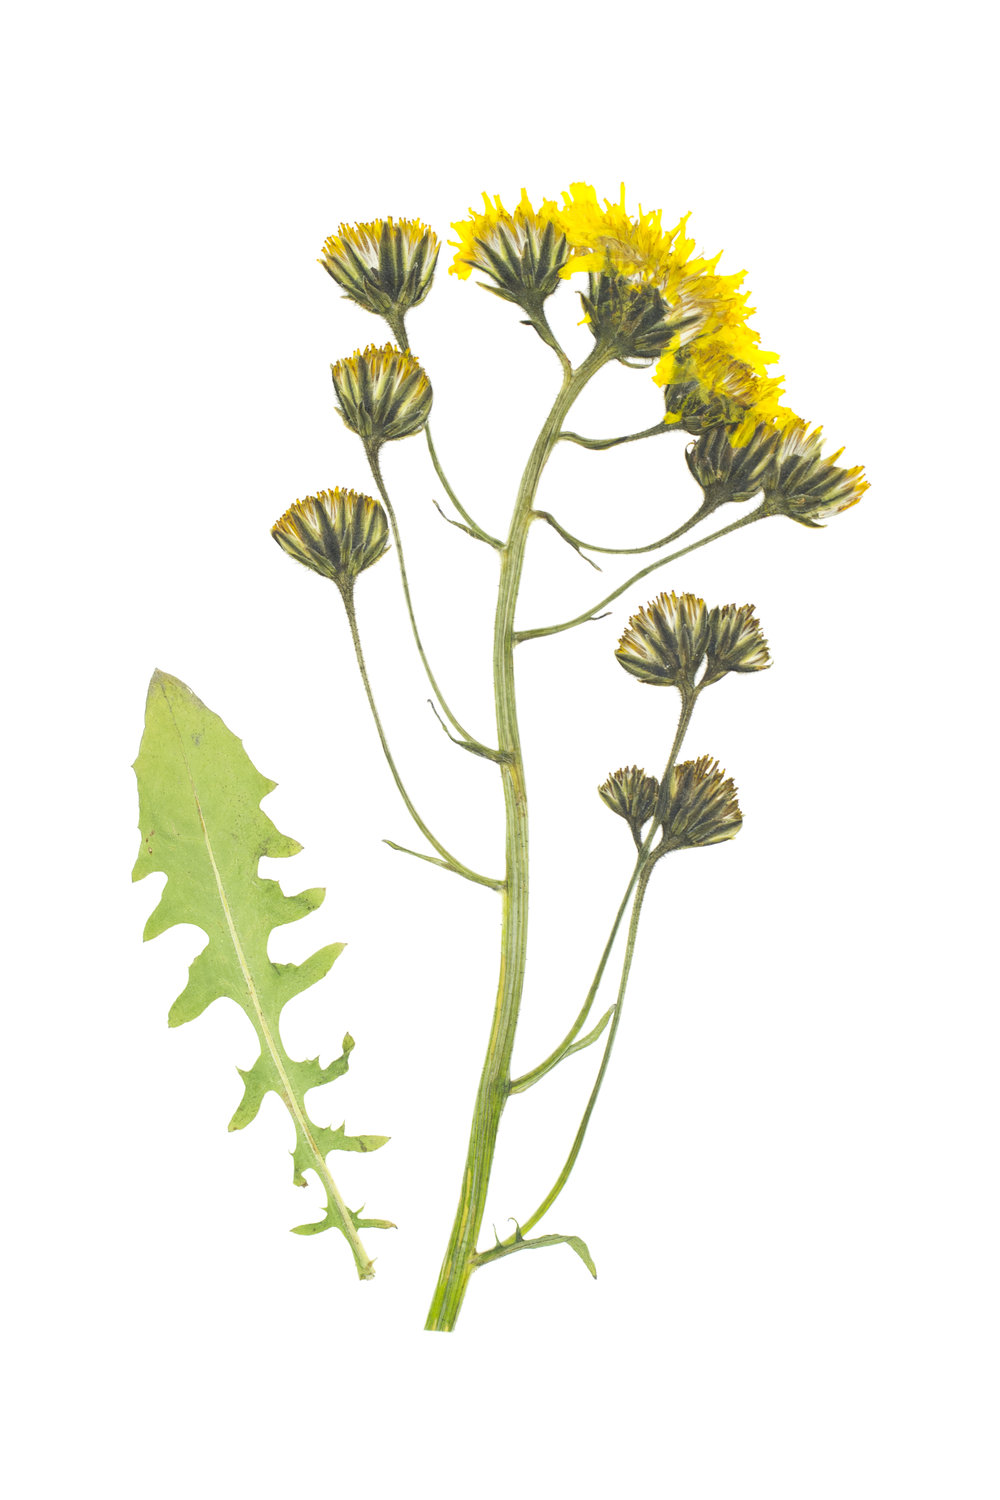 Crepis capillaris / Smooth Hawksbeard